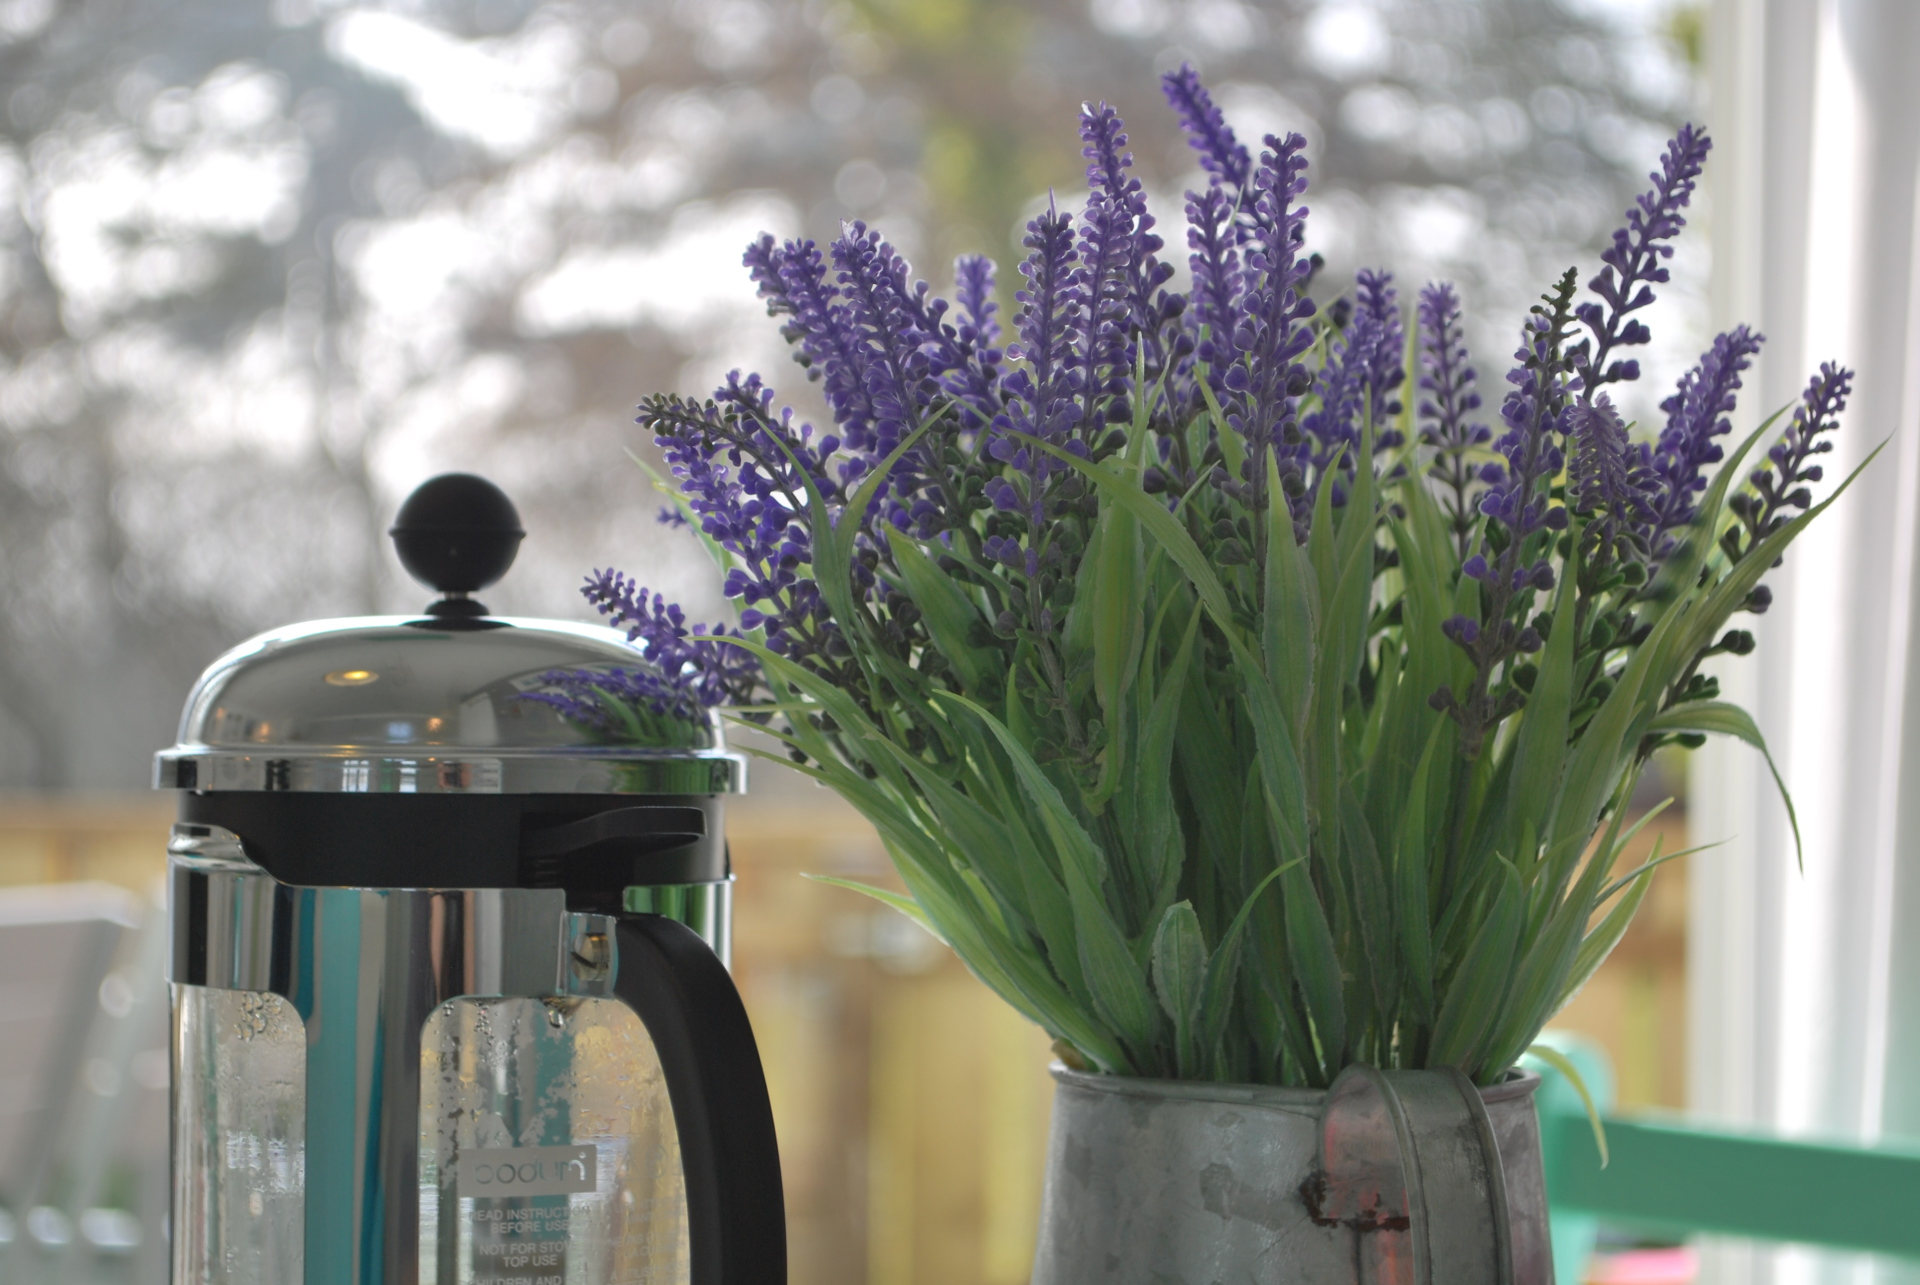 Dunster, luxury, Beach, hut, Salad, Days, cafetiere, flowers, lavender